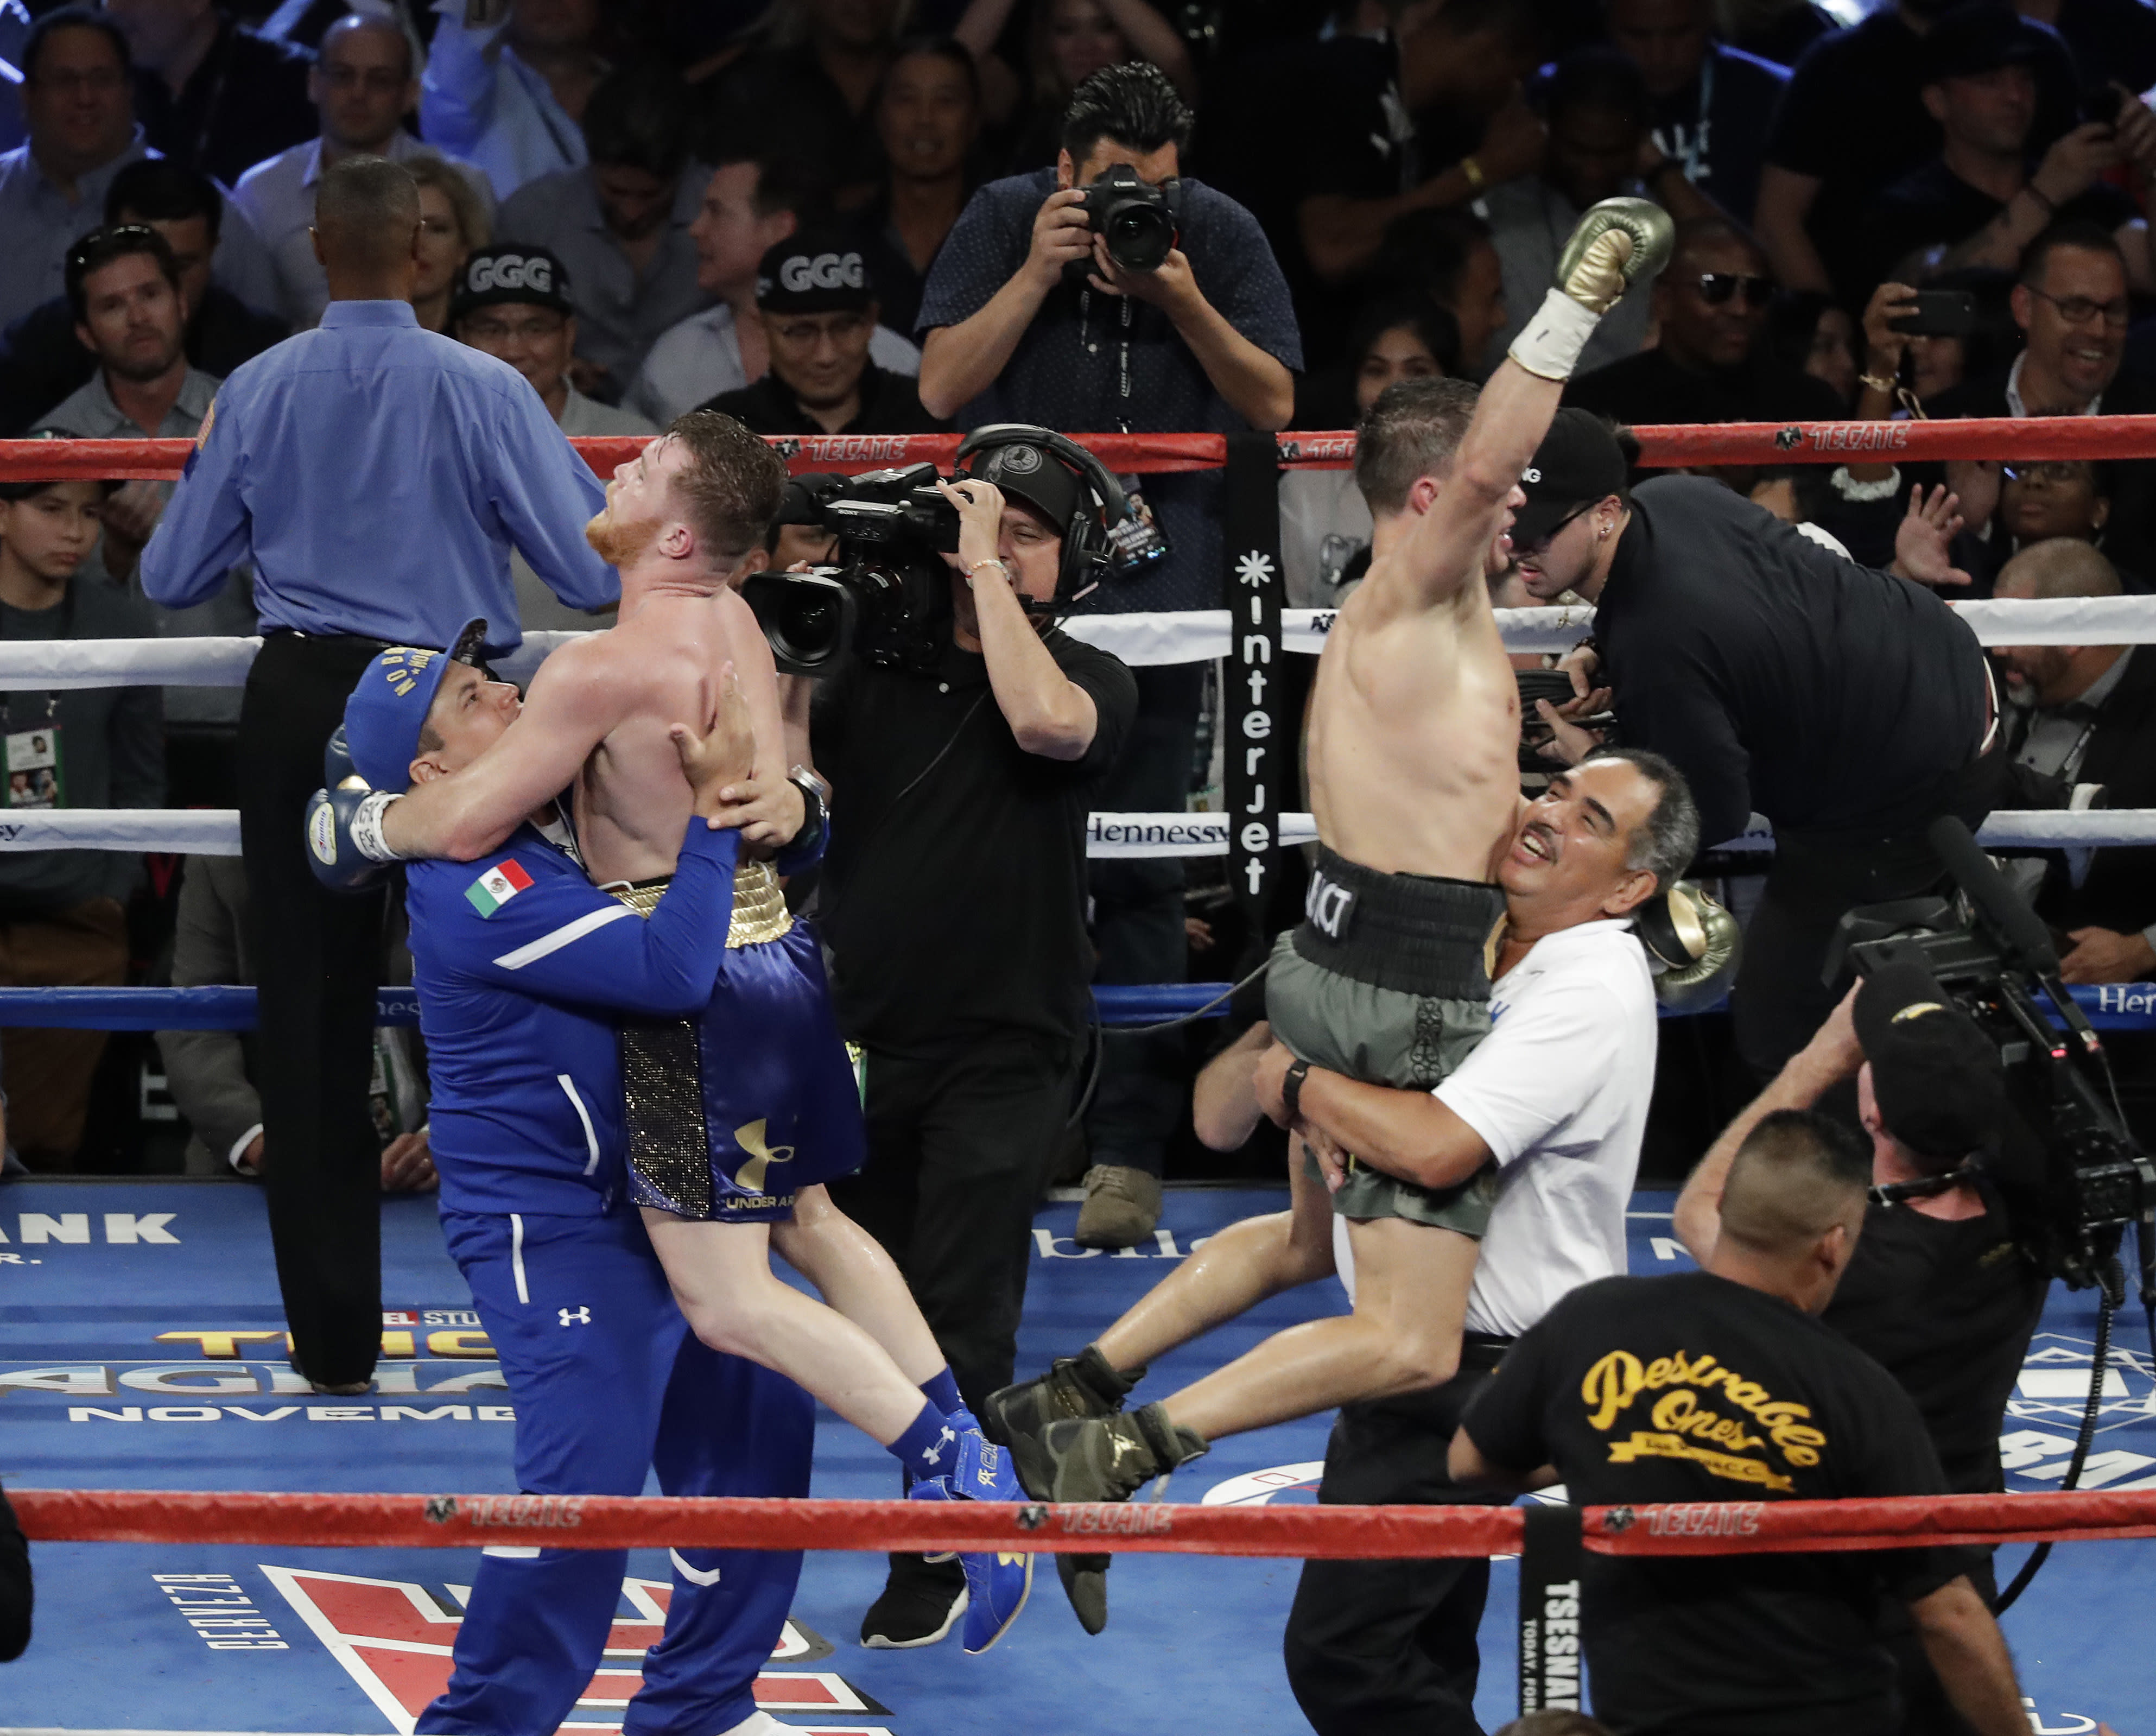 Canelo Alvarez doesn't seem too interested in a Gennady Golovkin rematch